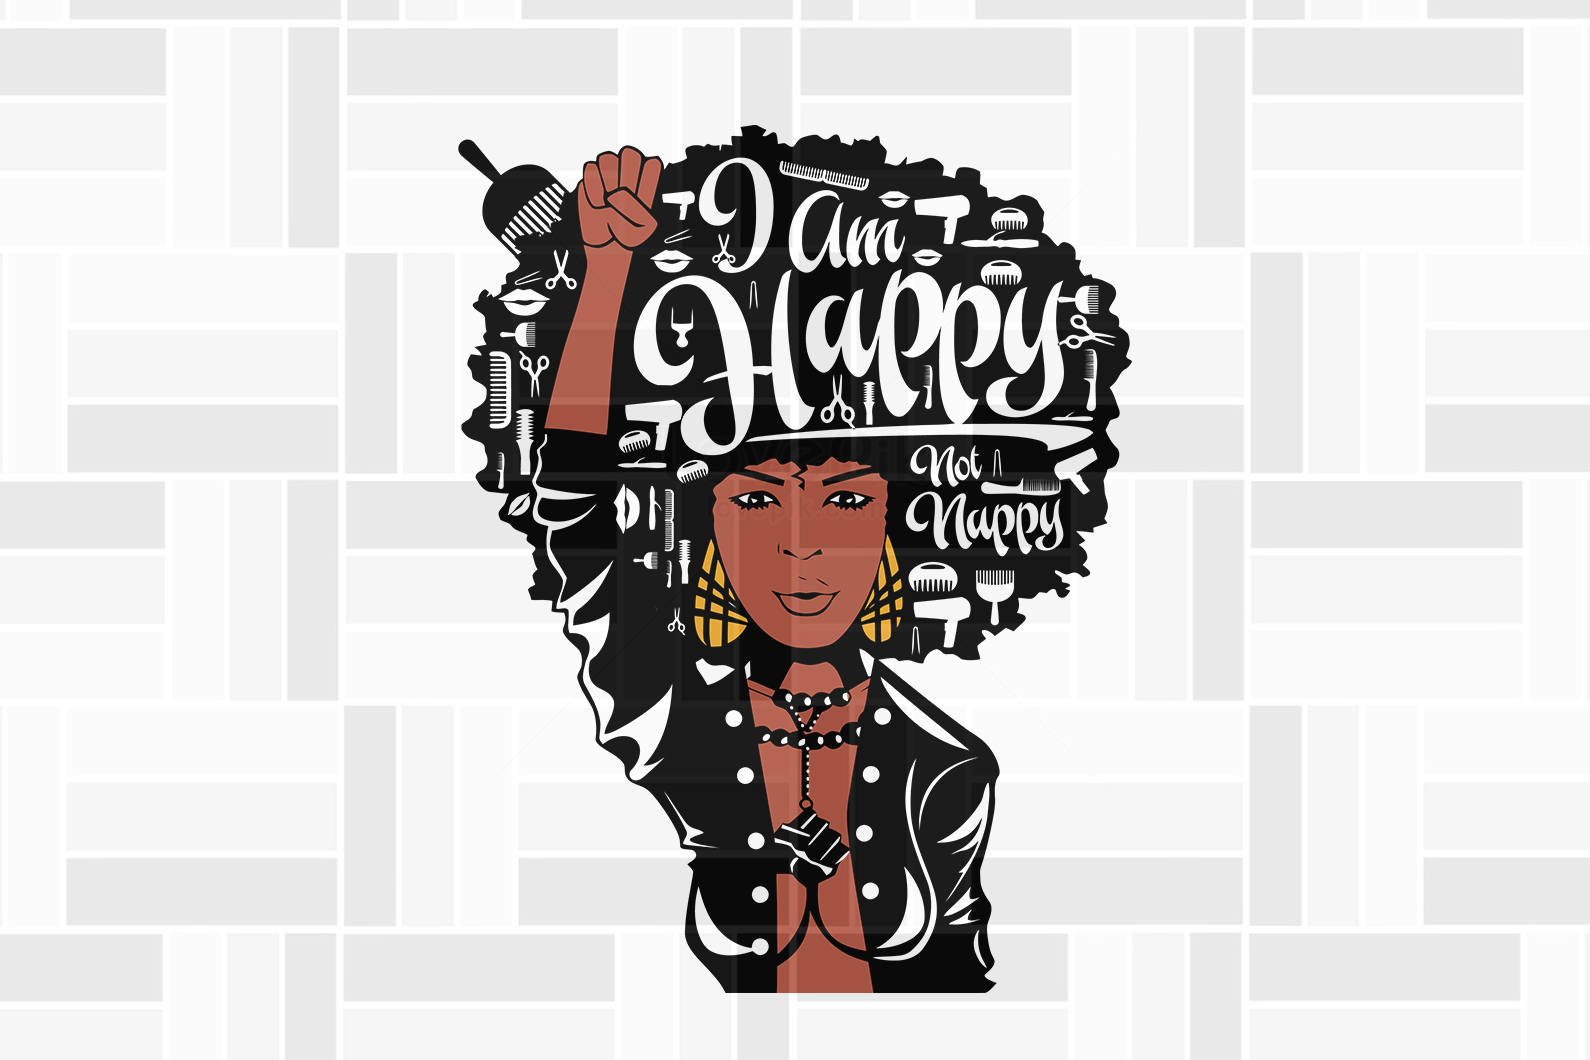 Black girl svg bundles, svg bundles,black lives matter, afro svg, melanin cricut, birthday queen svg, black girl magic, black girl birthday, black woman svg, african woman svg, svg bundles silhouette, silhouette svg, svg files, svg files for cricut,